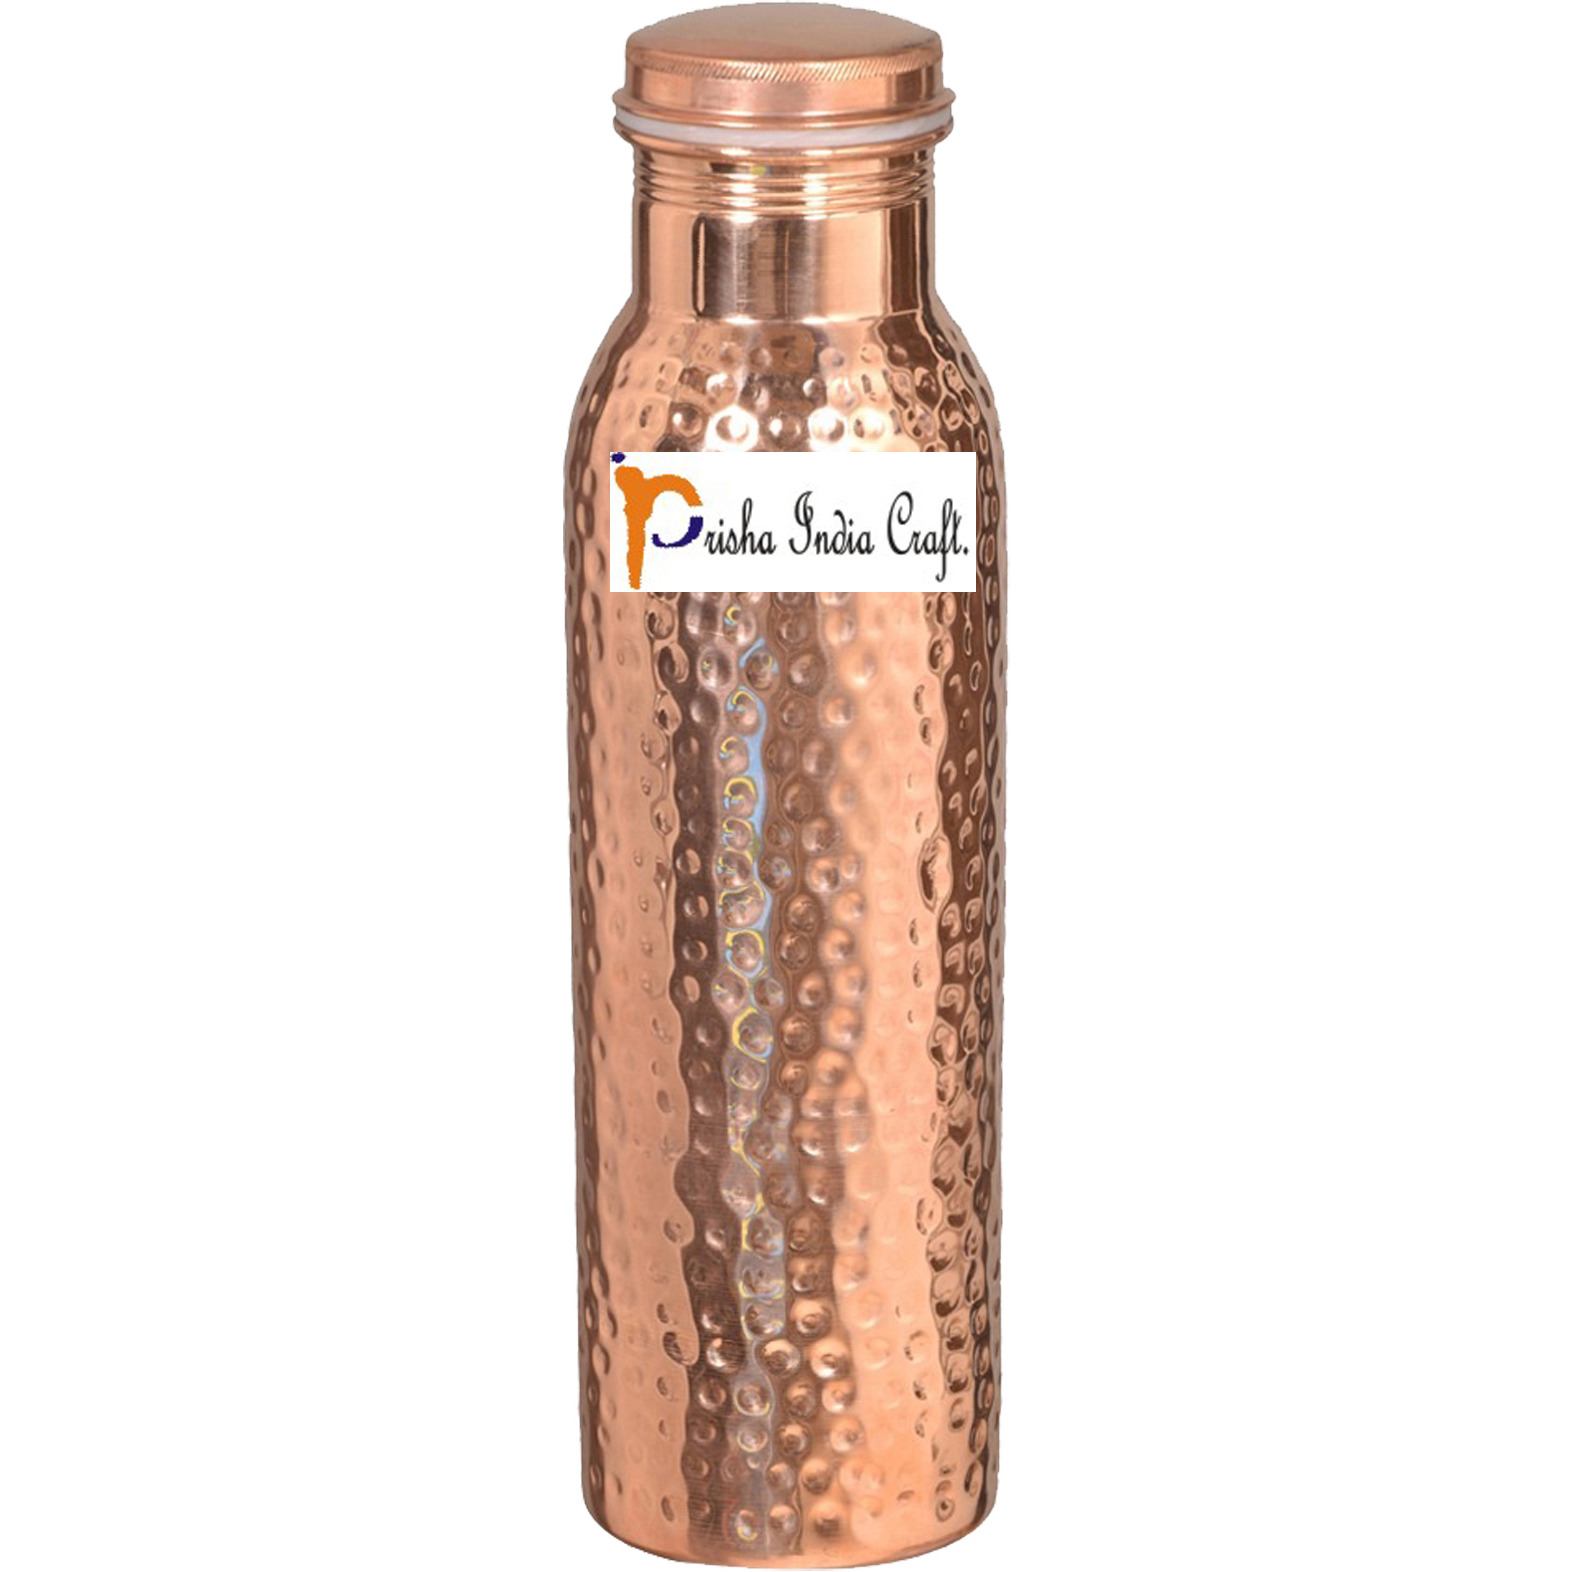 1000ml / 33.81oz - Prisha India Craft B. - Hammered Copper Water Bottle | Joint Free, Best Quality Water Bottle - Handmade Christmas Gift Item